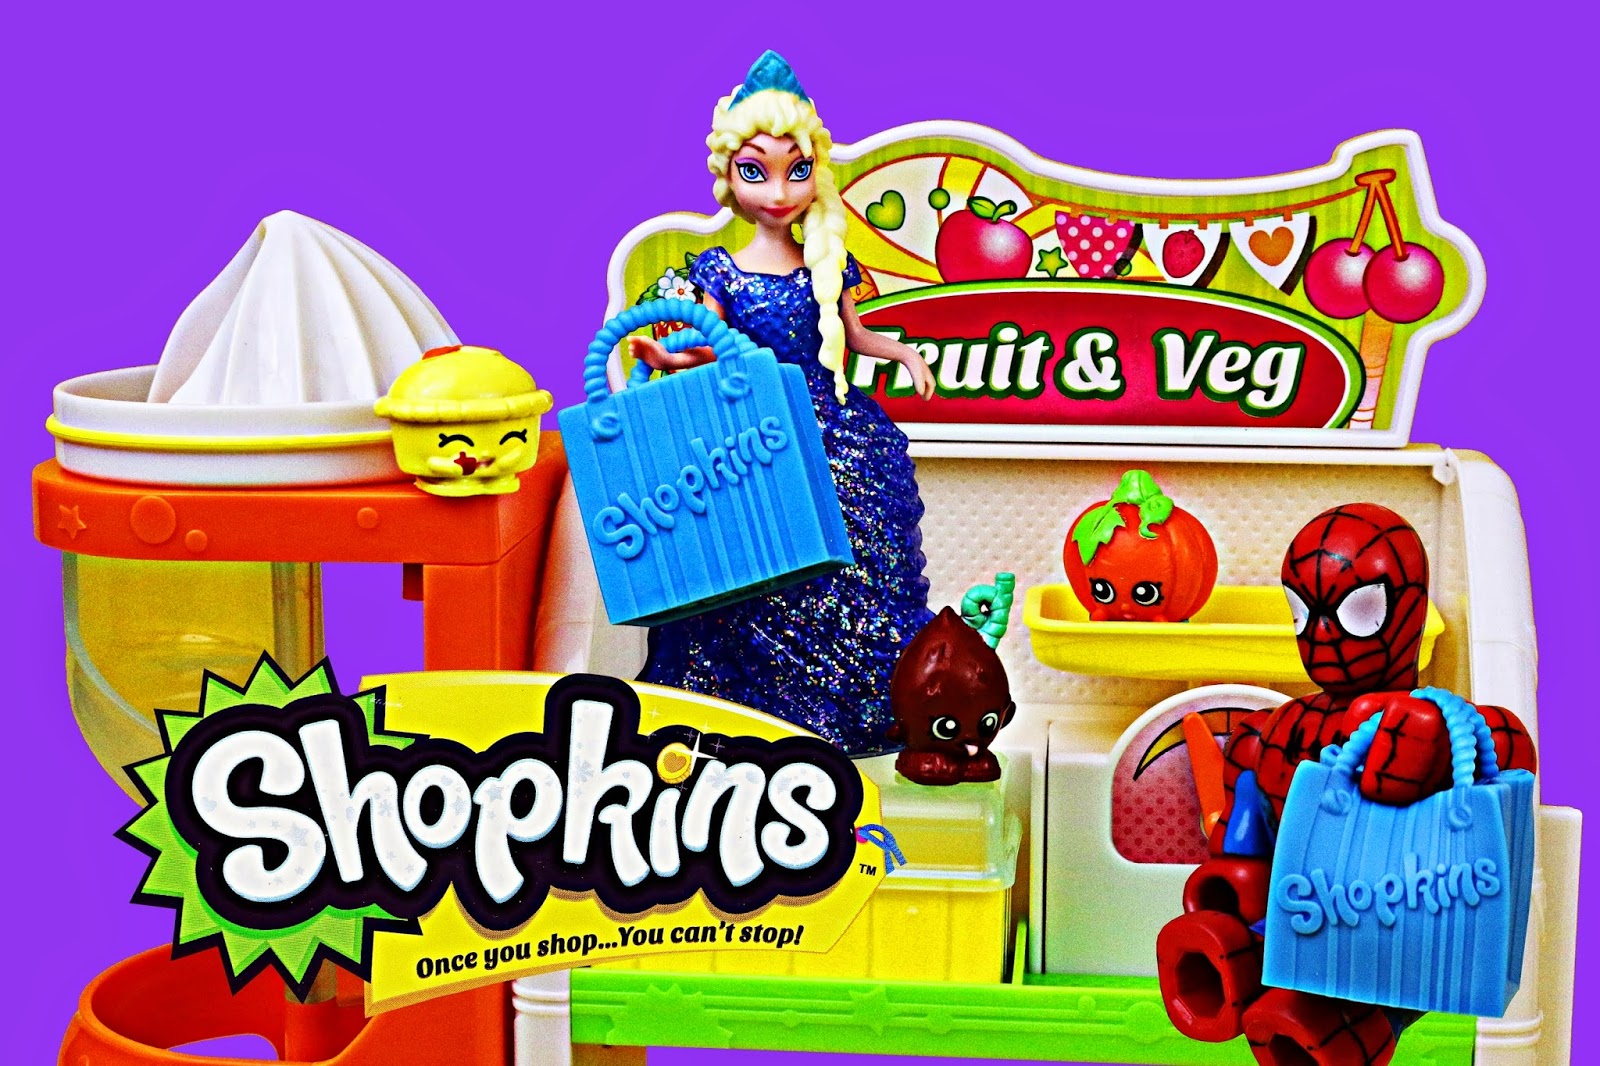 http://gallerycartoon.blogspot.com/2015/01/shopkins-cartoon-pictures-4.html